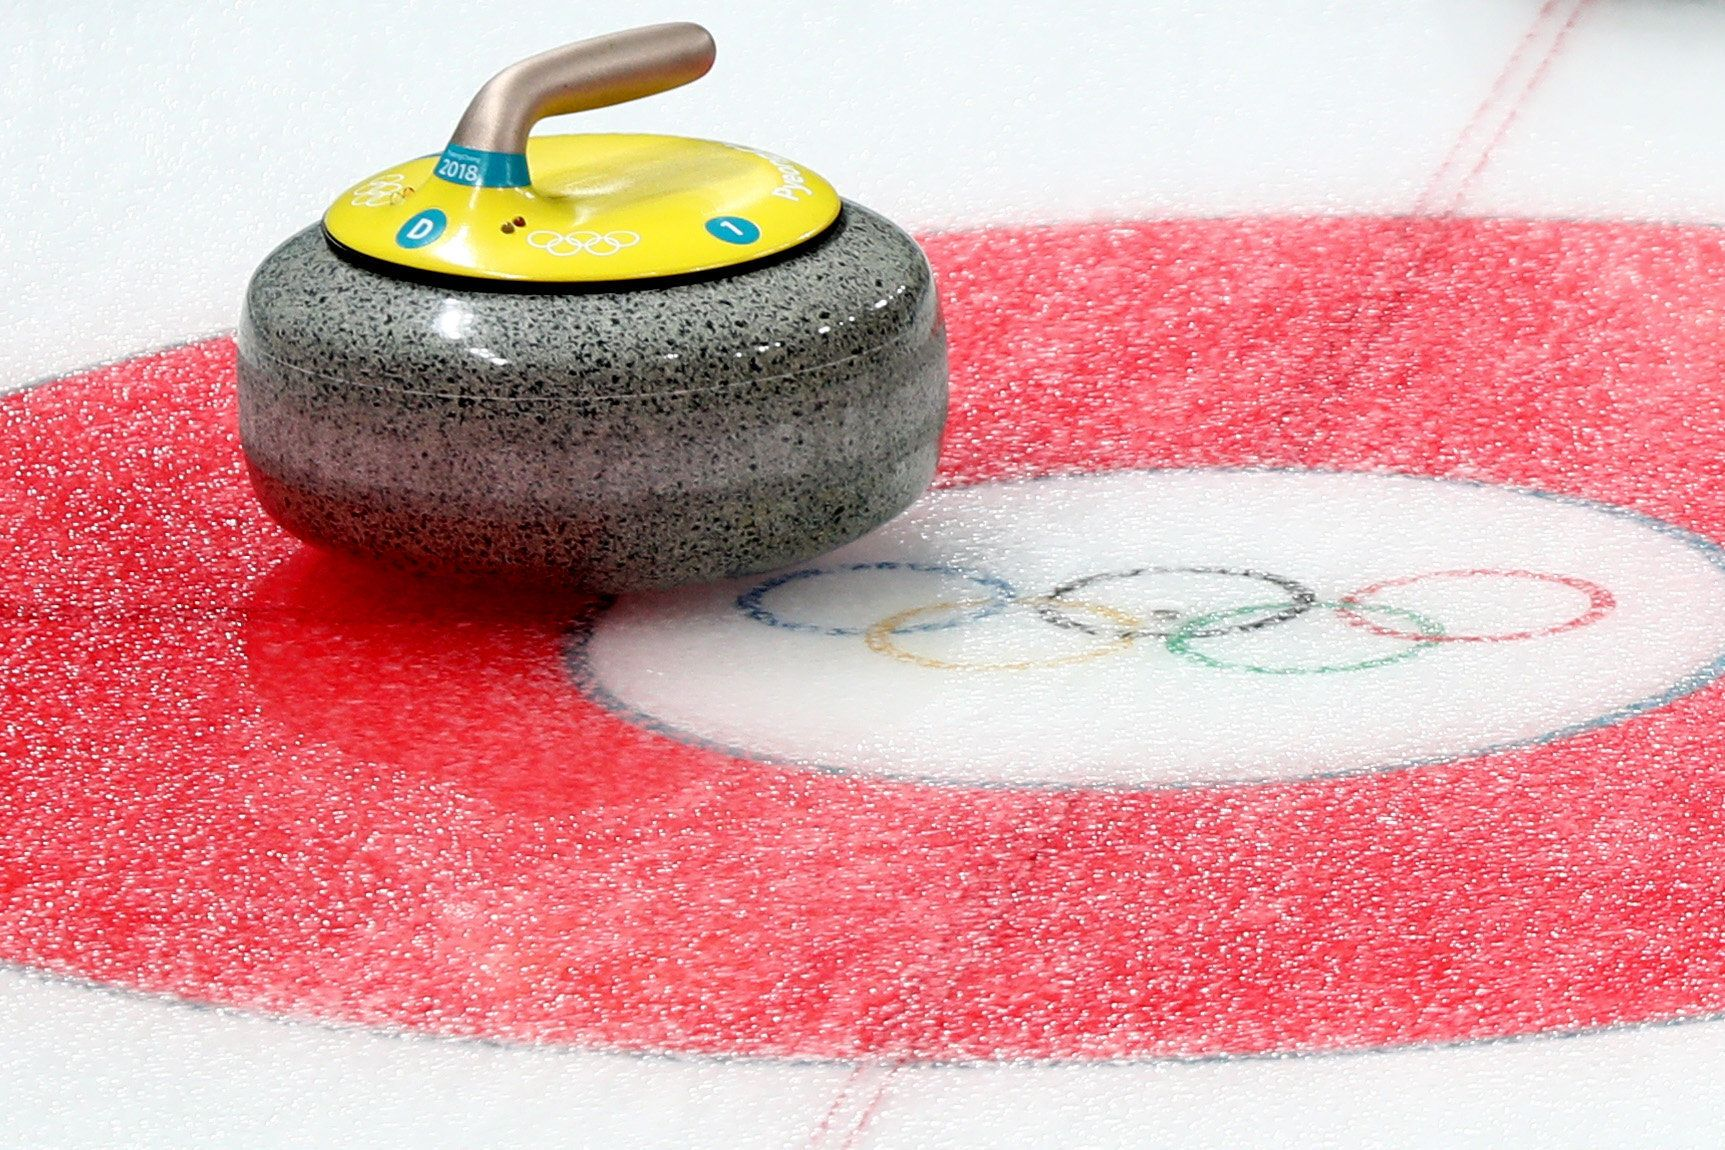 GANGNEUNG, SOUTH KOREA - FEBRUARY 16: A detail of a stone during the Curling Women's Round Robin Session 4 at Gangneung Curling Centre on February 16, 2018 in Gangneung, South Korea.(Photo by Maddie Meyer/Getty Images)